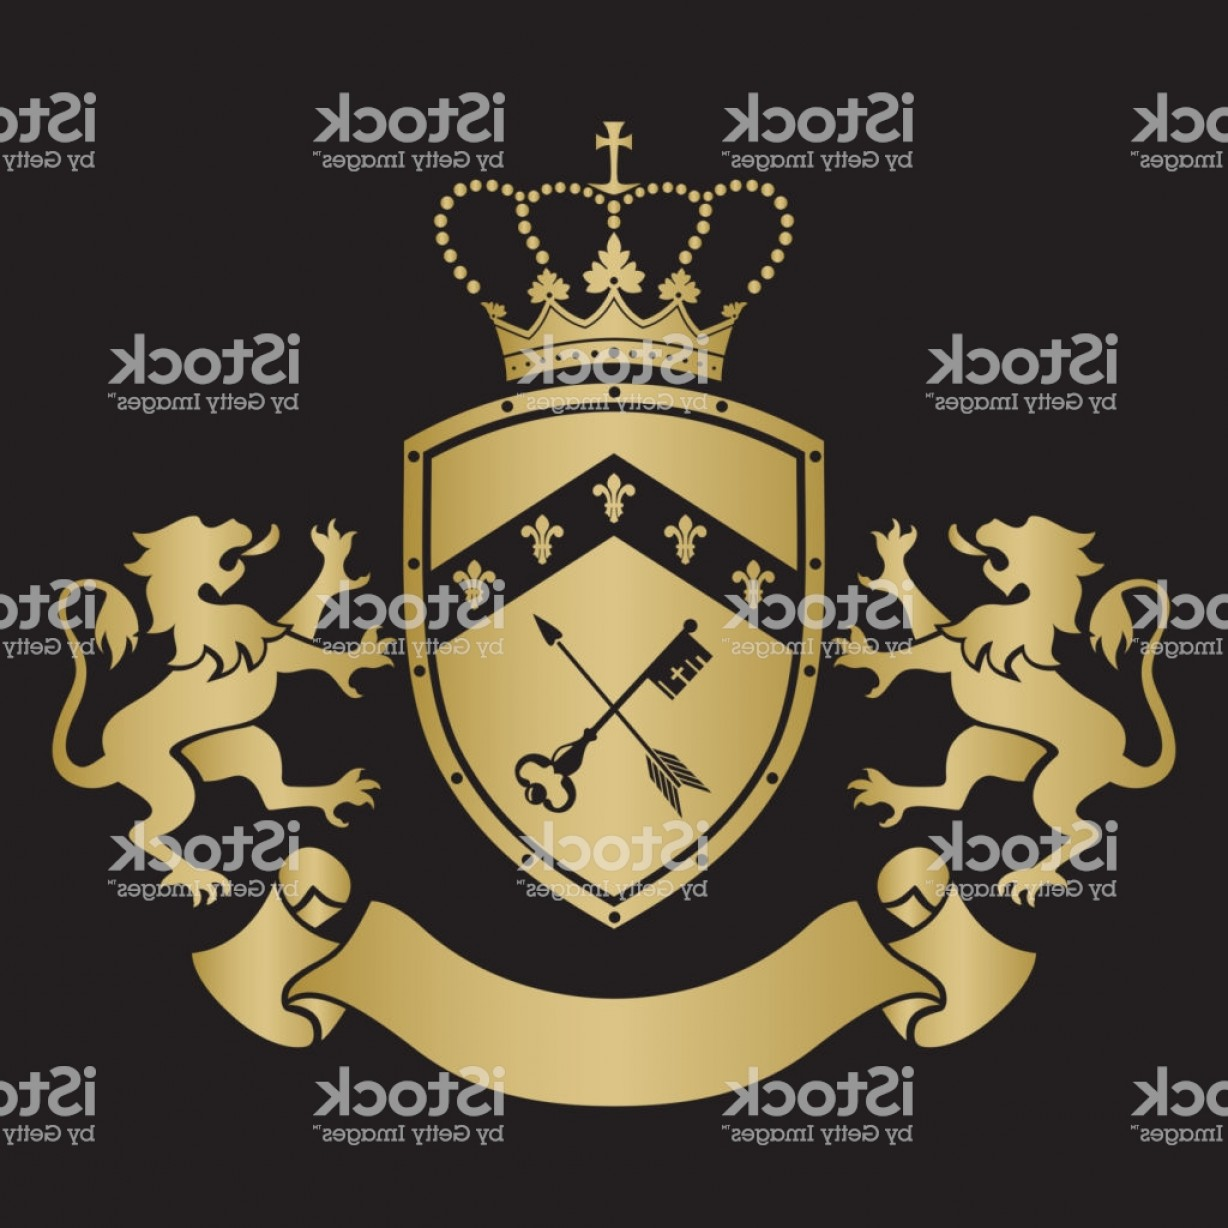 Standing Lions Crest Vector: Coat Of Arms Shield With Crown Key And Arrow Two Standing Lions At Sides Gm